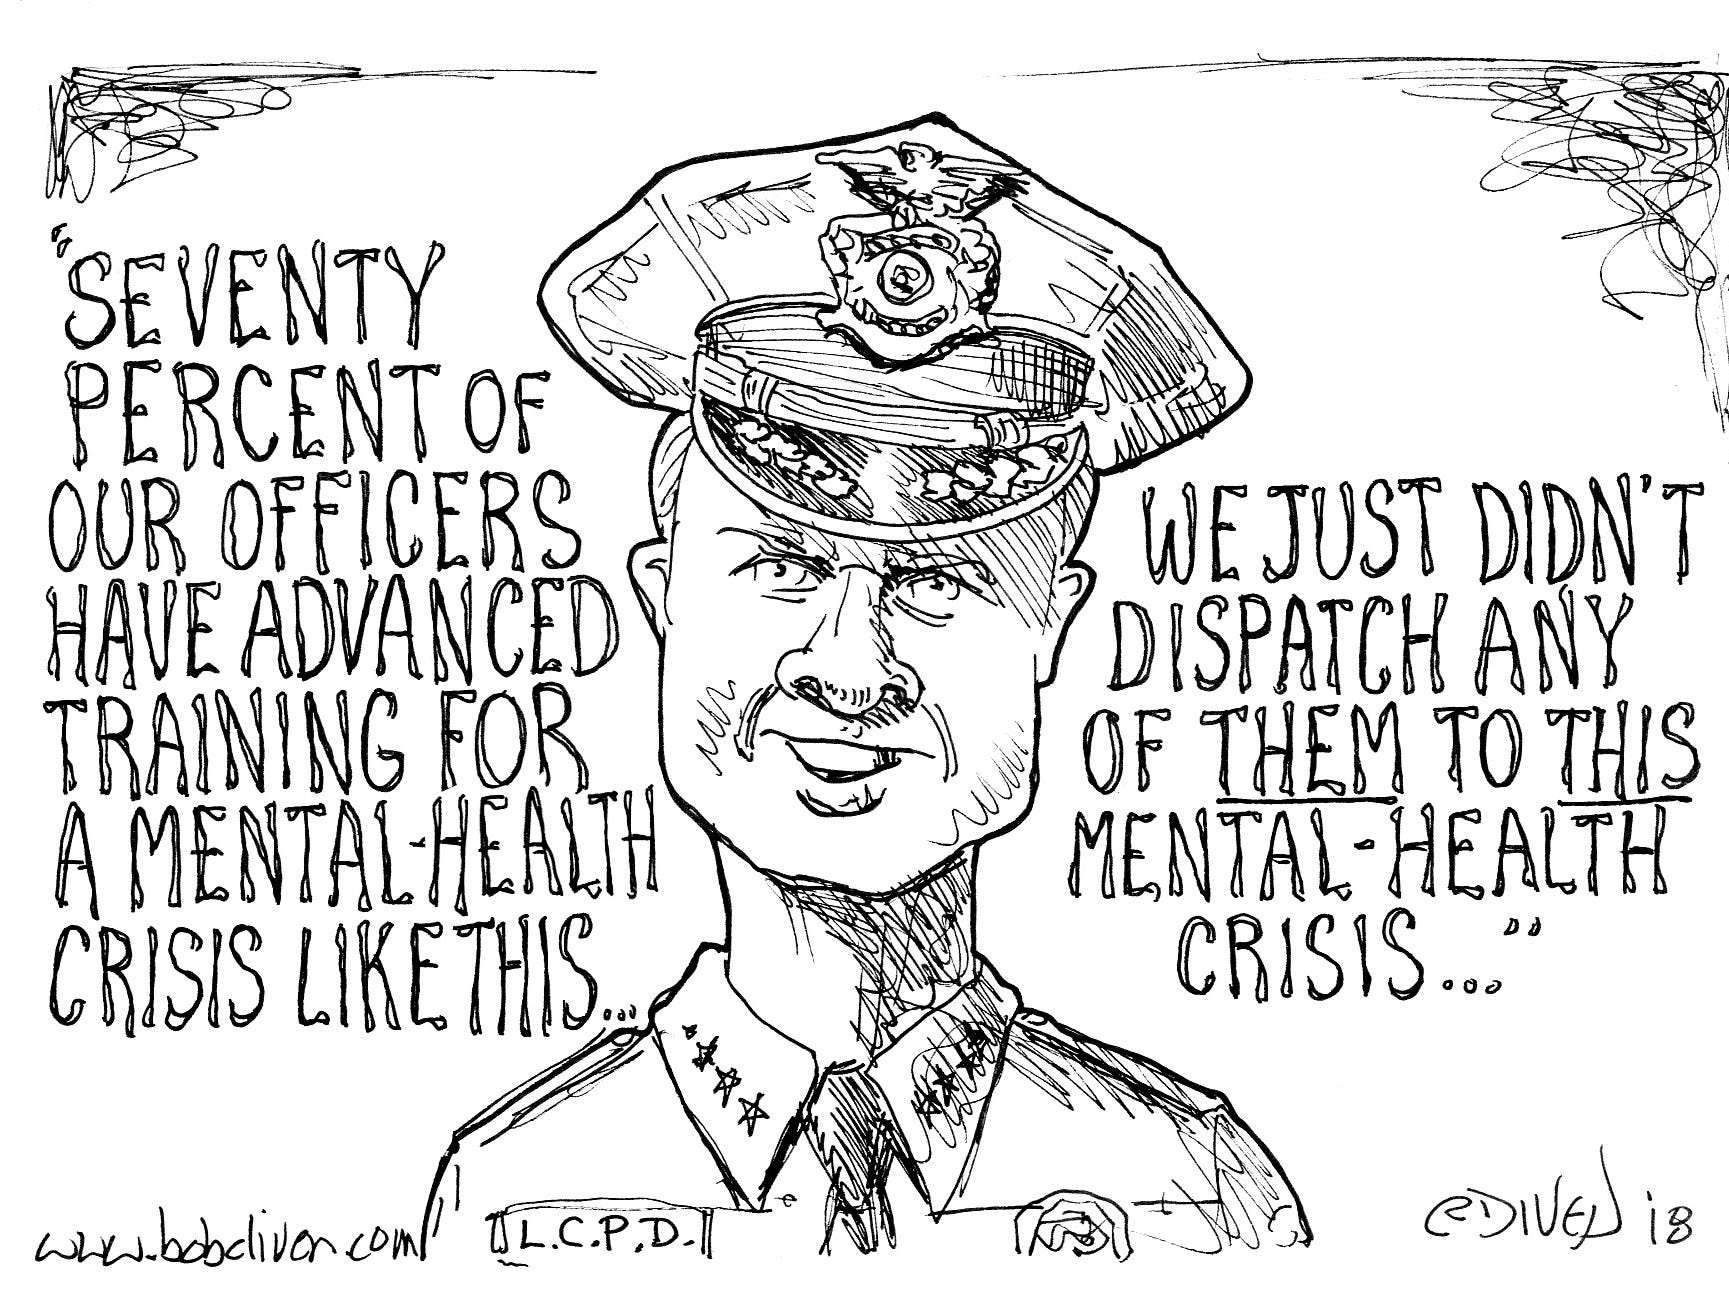 Bob Diven editorial cartoon, published Aug. 19, 2018